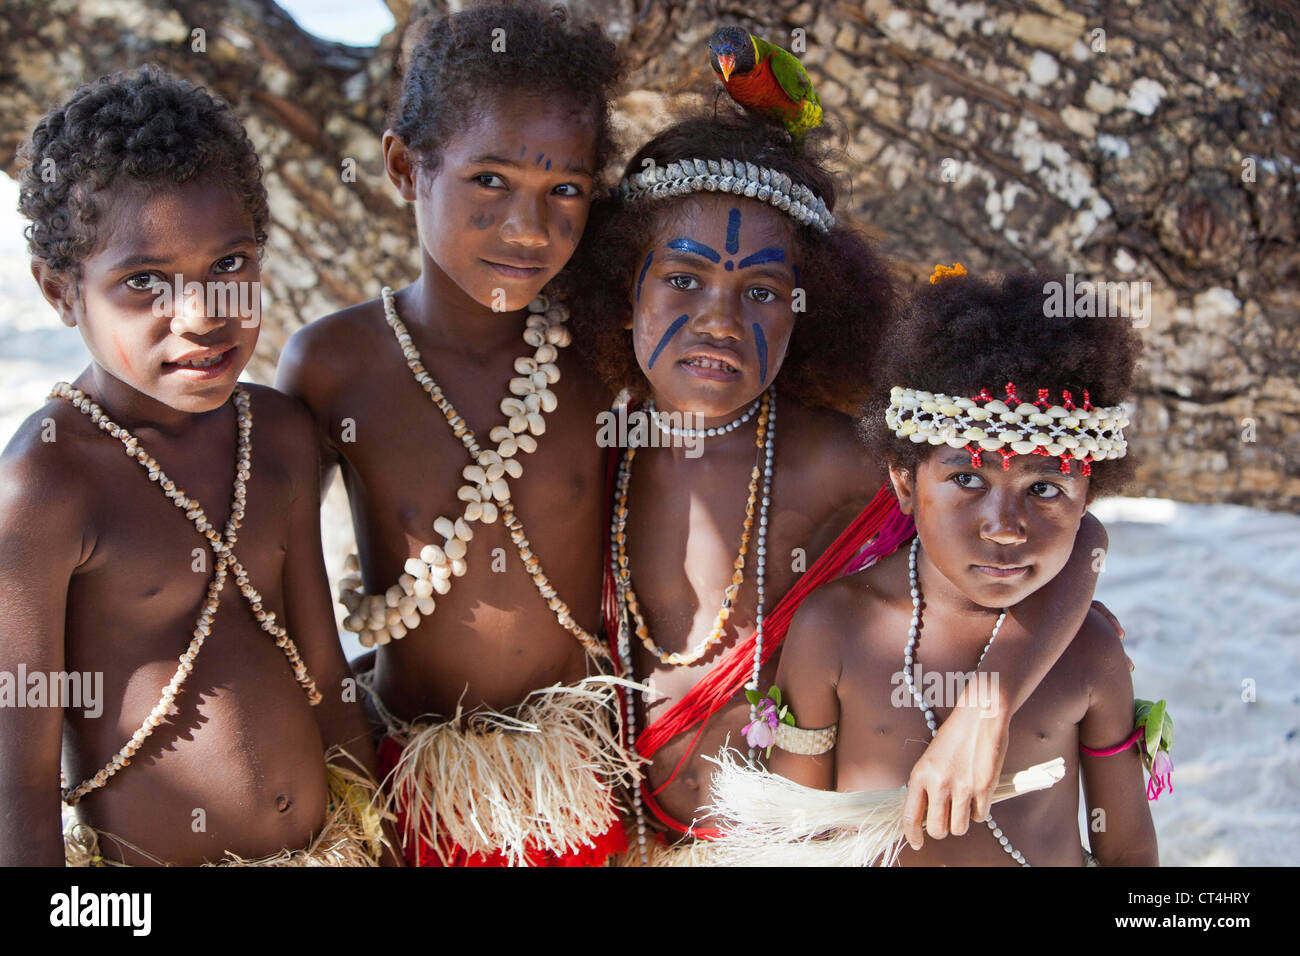 Indonesia, Papua New Guinea, Nuana Island. Young children in Stock Photo, Royalty Free Image